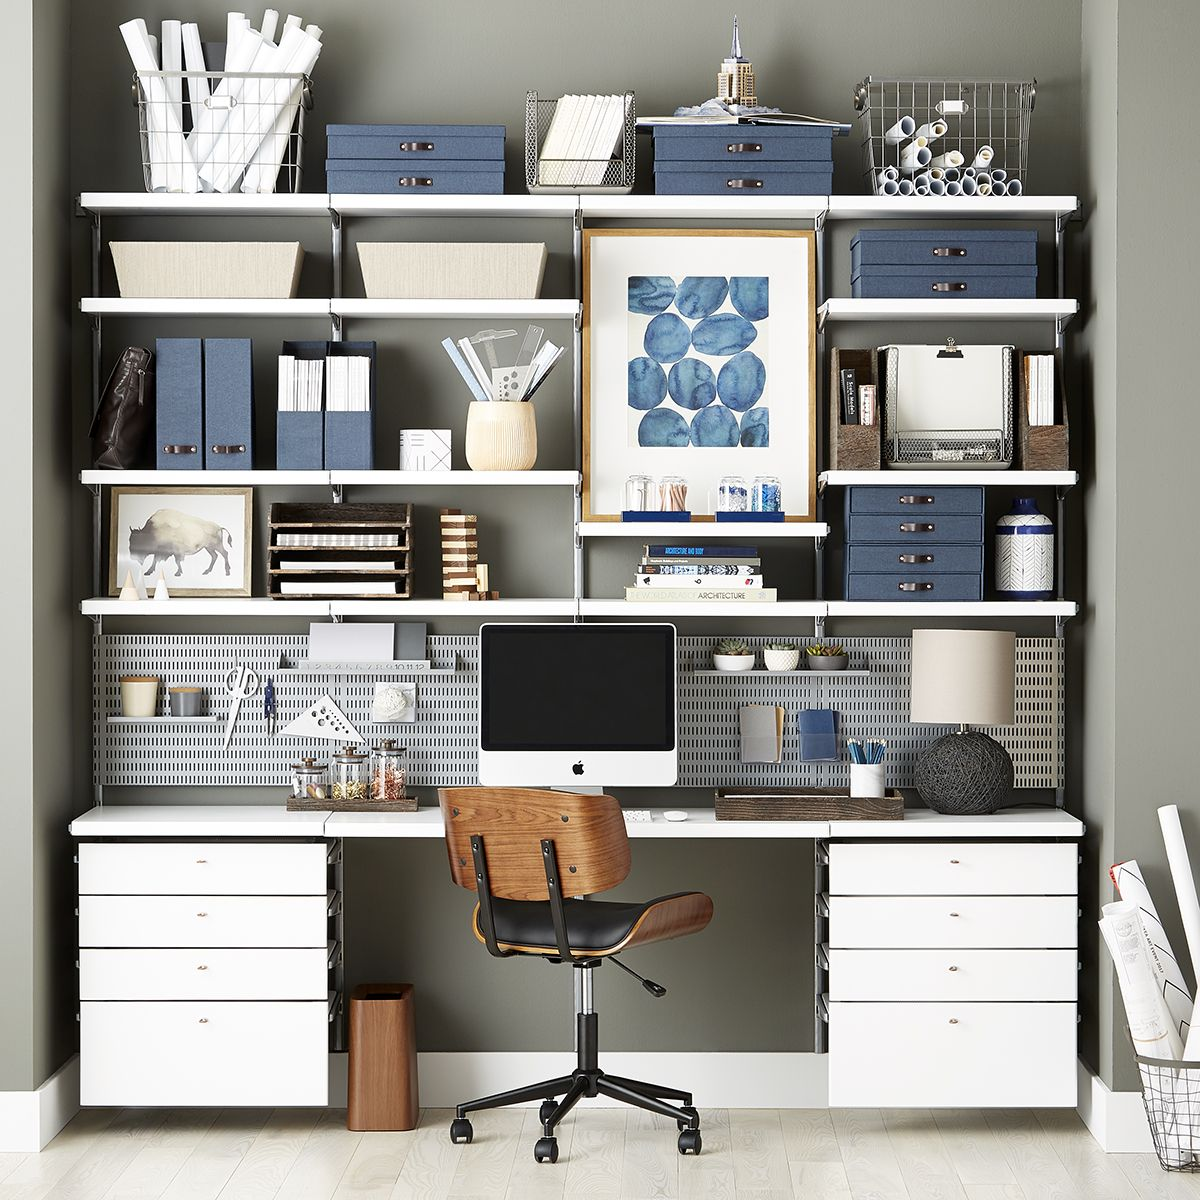 Attractive Maybe This Behind Closet Doors For Damonu0027s Office. White U0026 Platinum Elfa  Décor Office